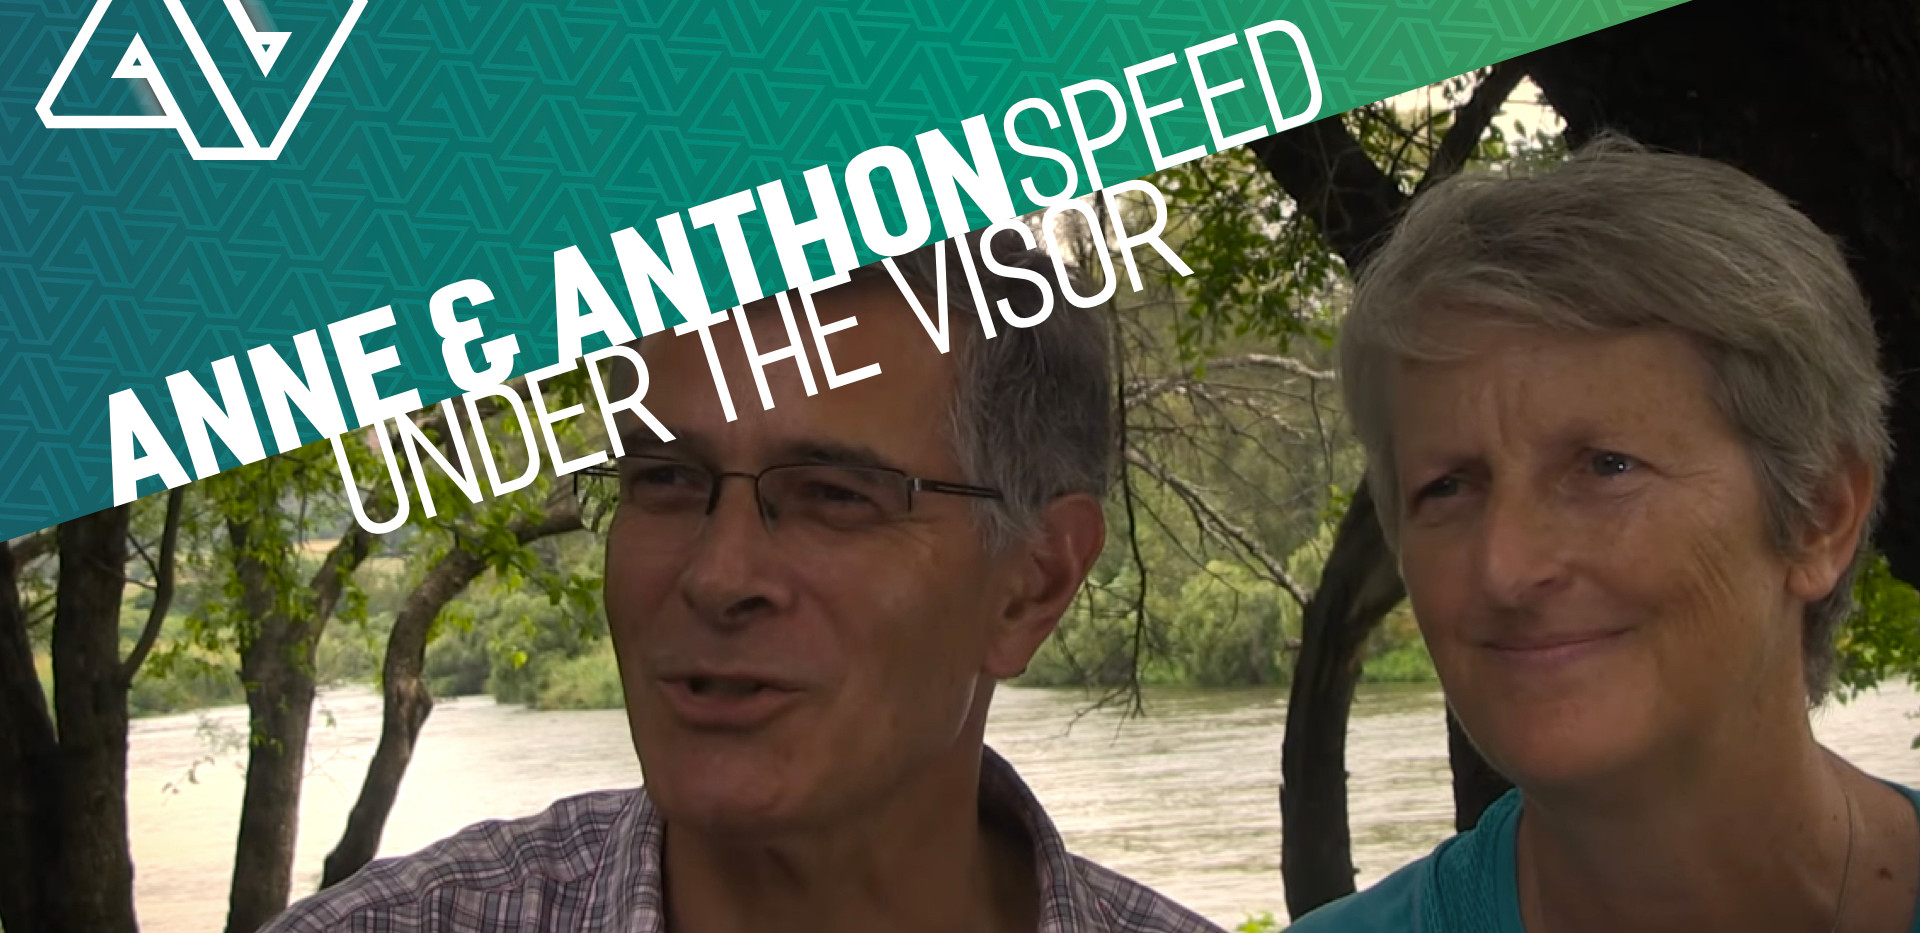 Anne and Anthon Speed